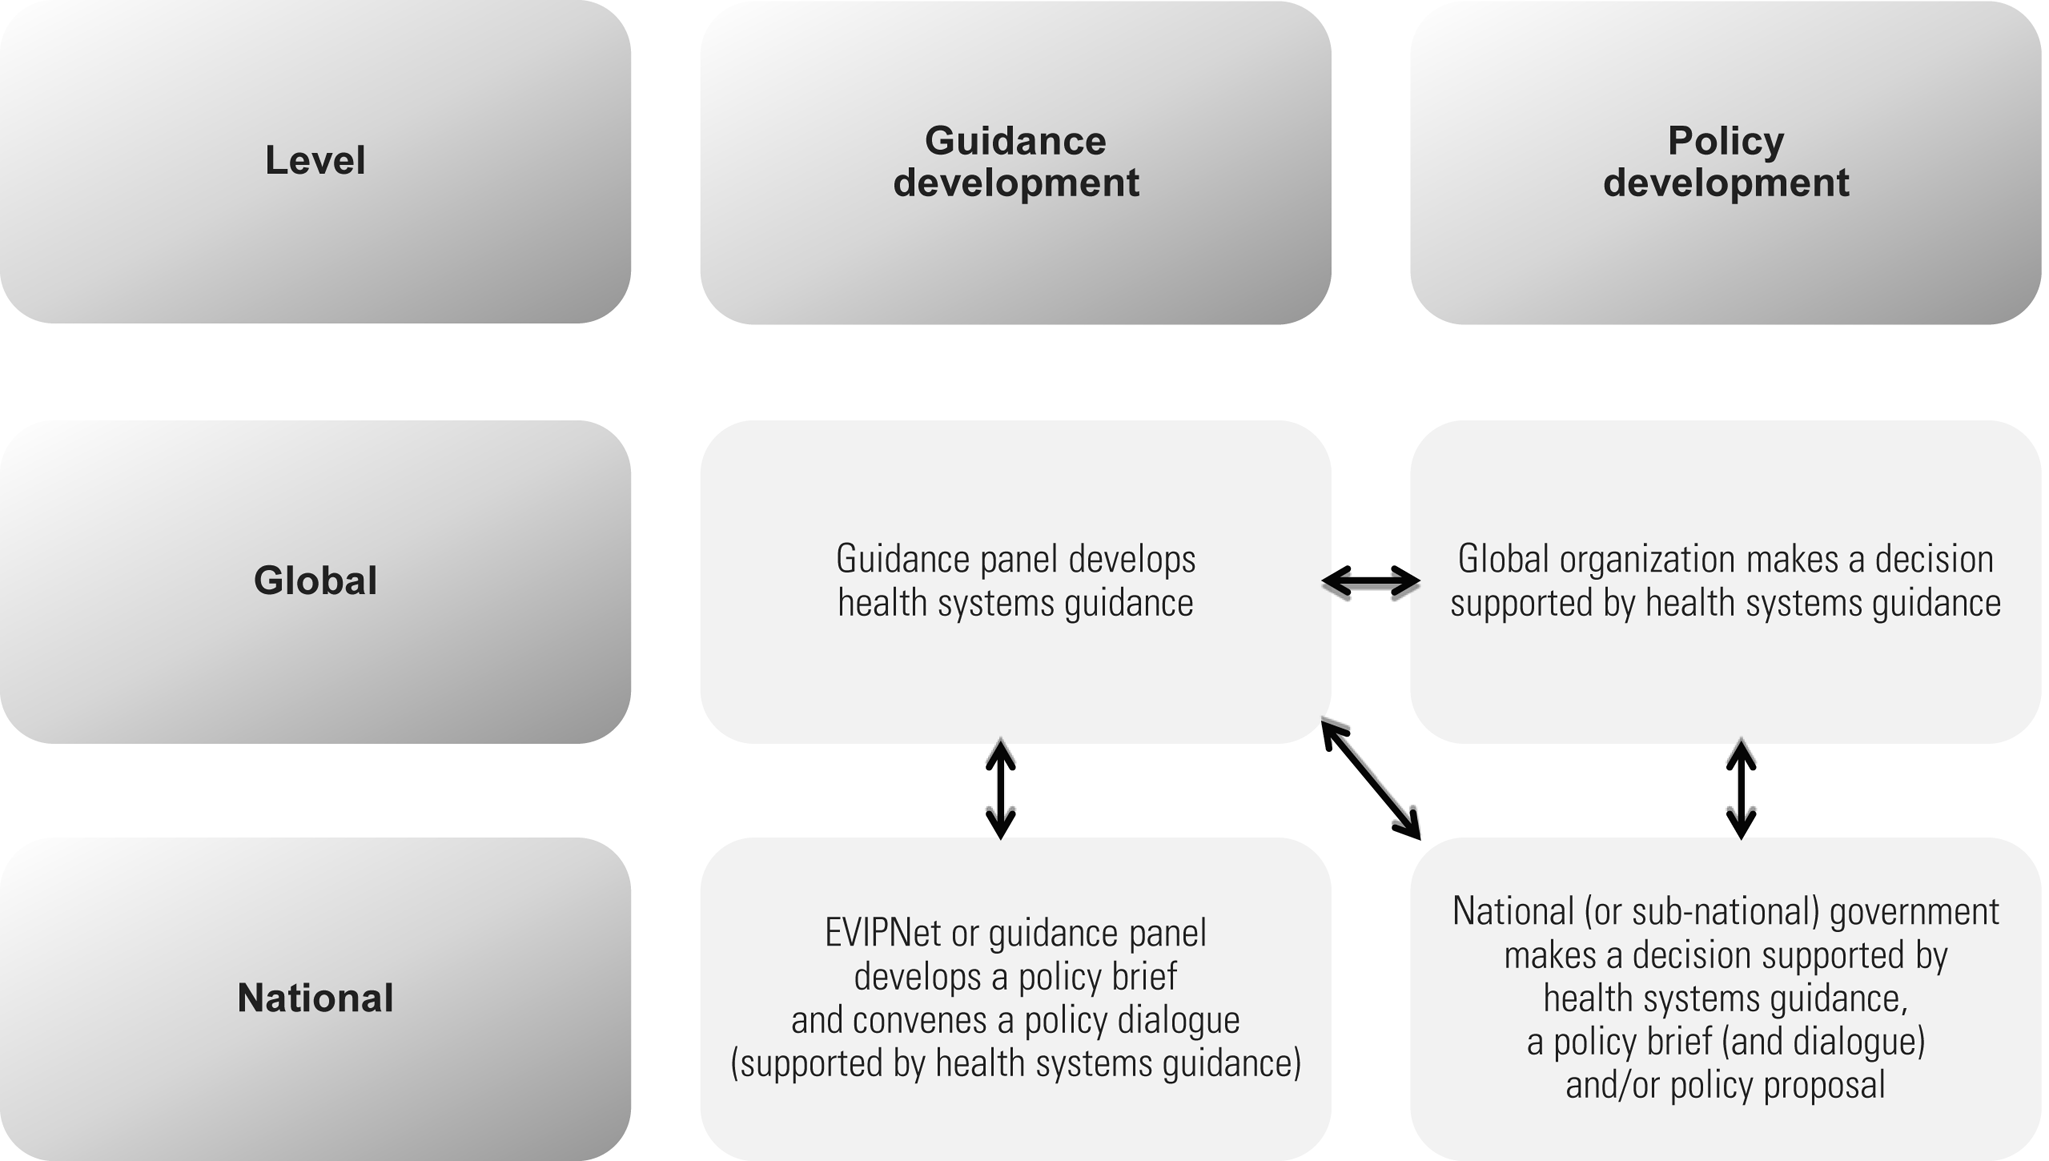 Potential links between guidance and policy development at global and national levels.